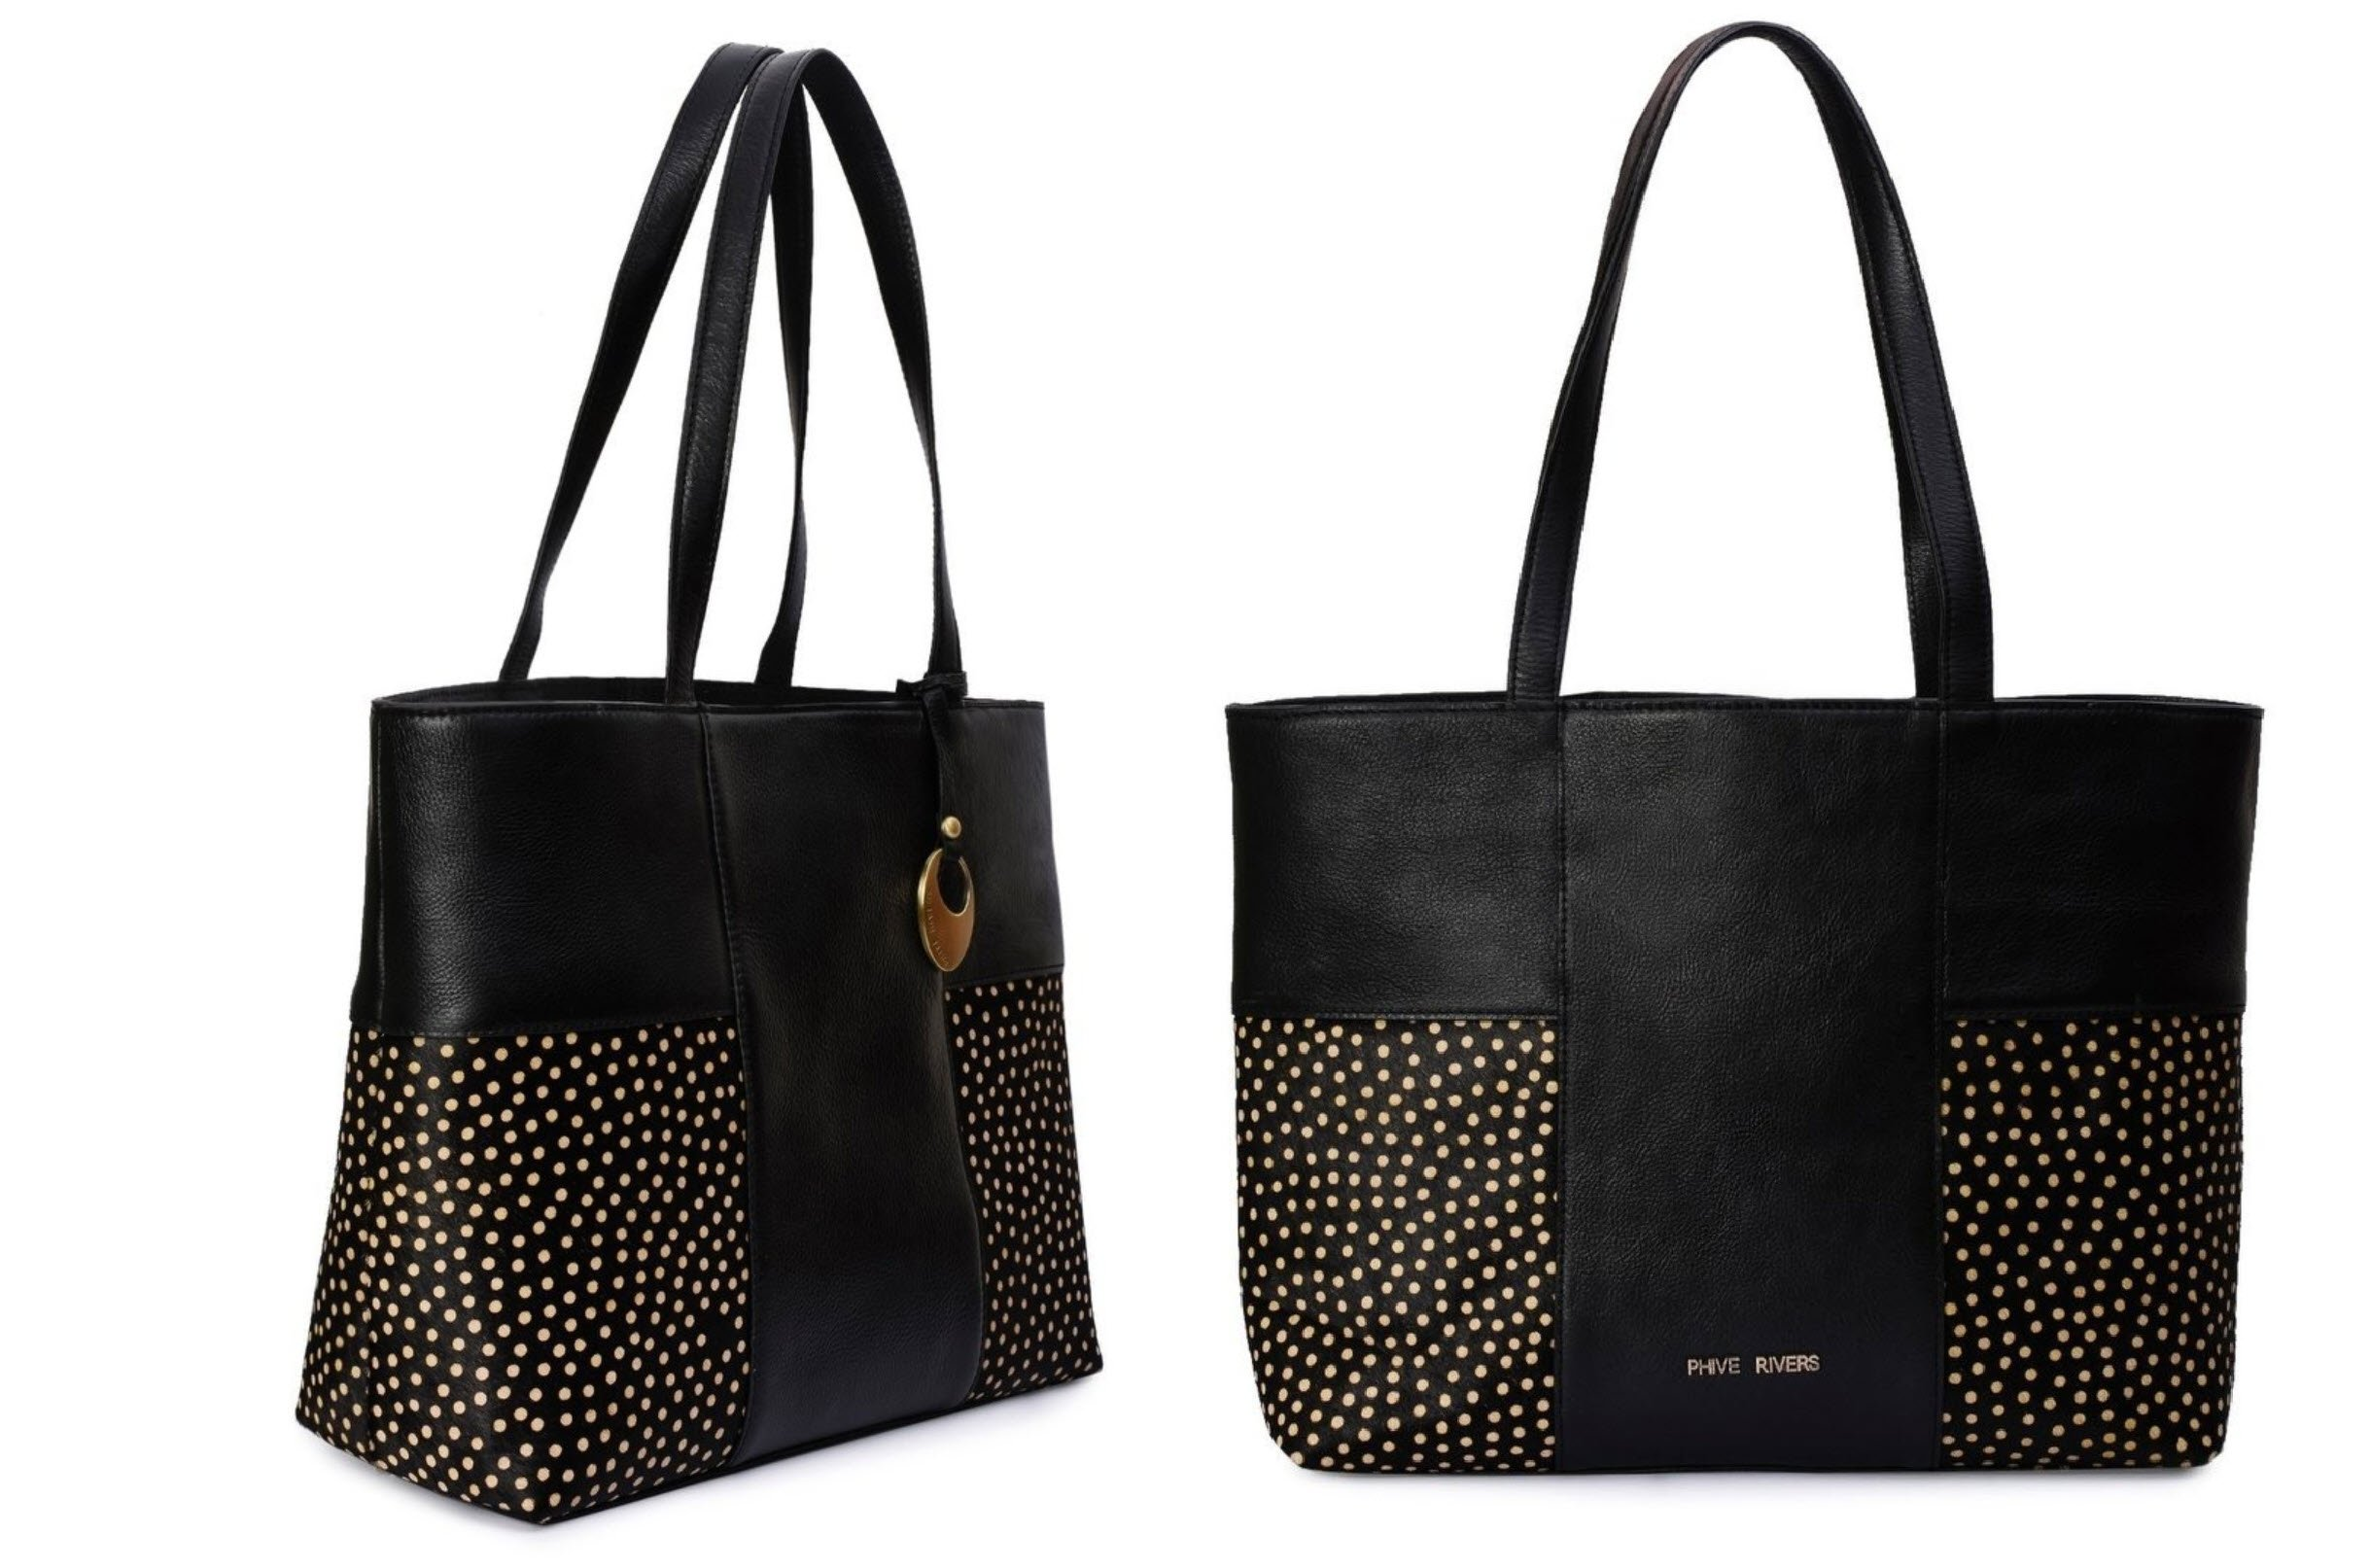 Luxury Handbags Discounted Prices